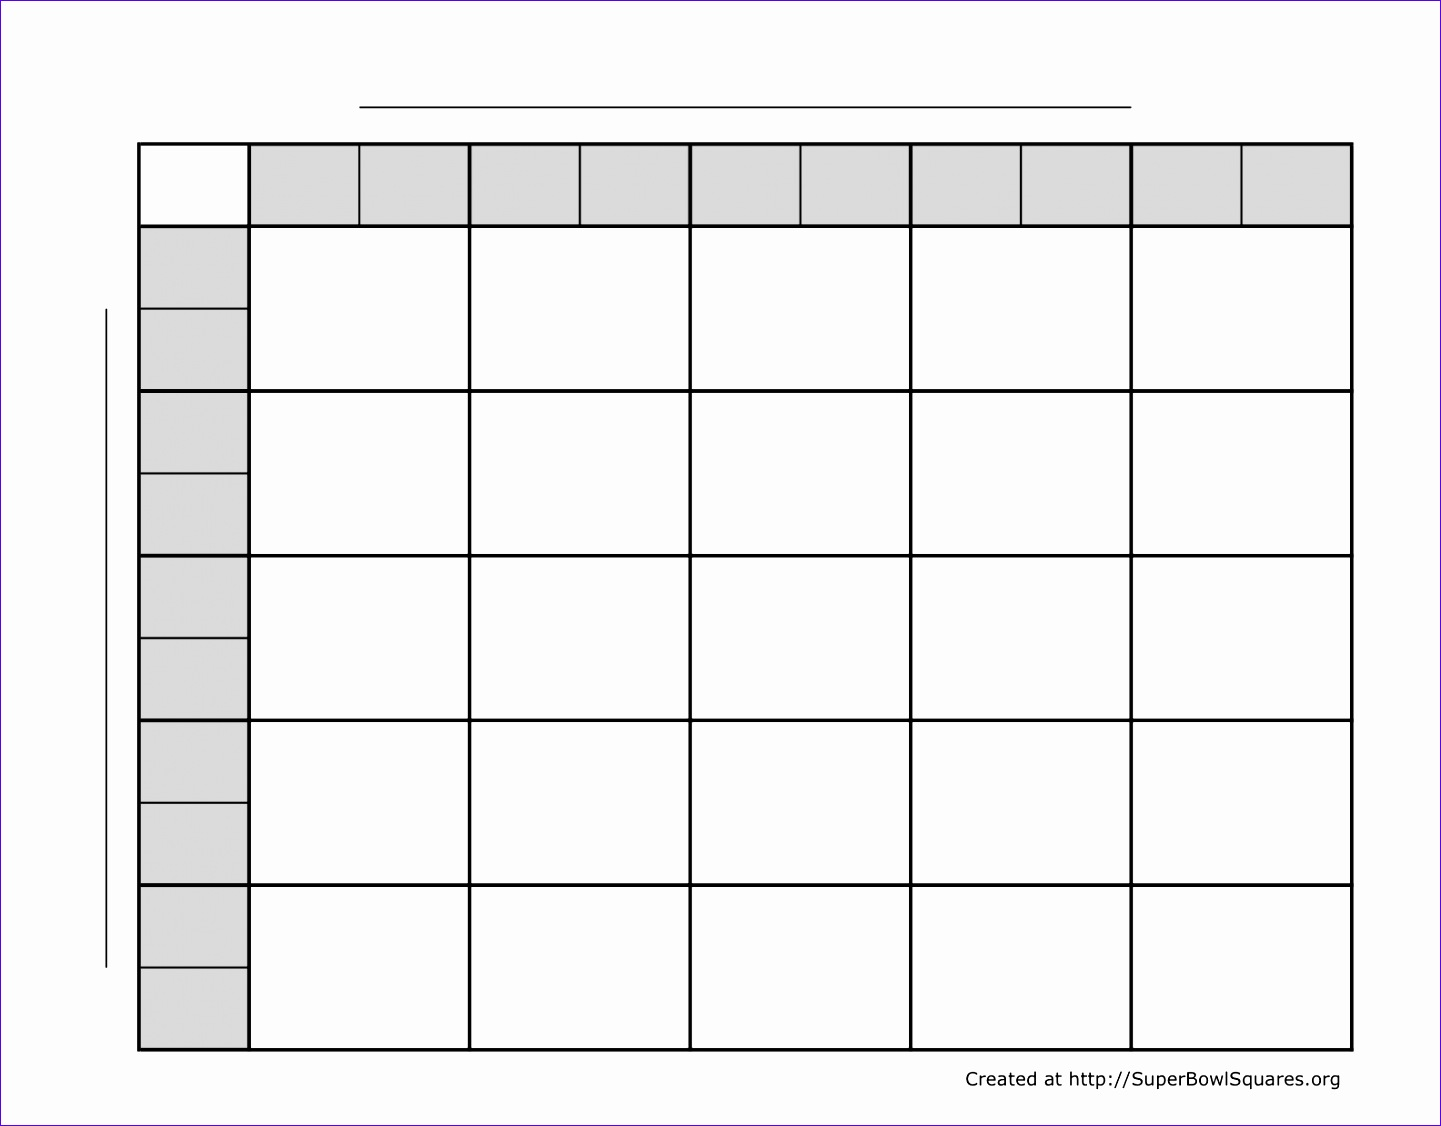 Excel super bowl squares template gallery templates example free 7 excel template free exceltemplates exceltemplates football squares super bowl squares play football squares online sample alramifo Images